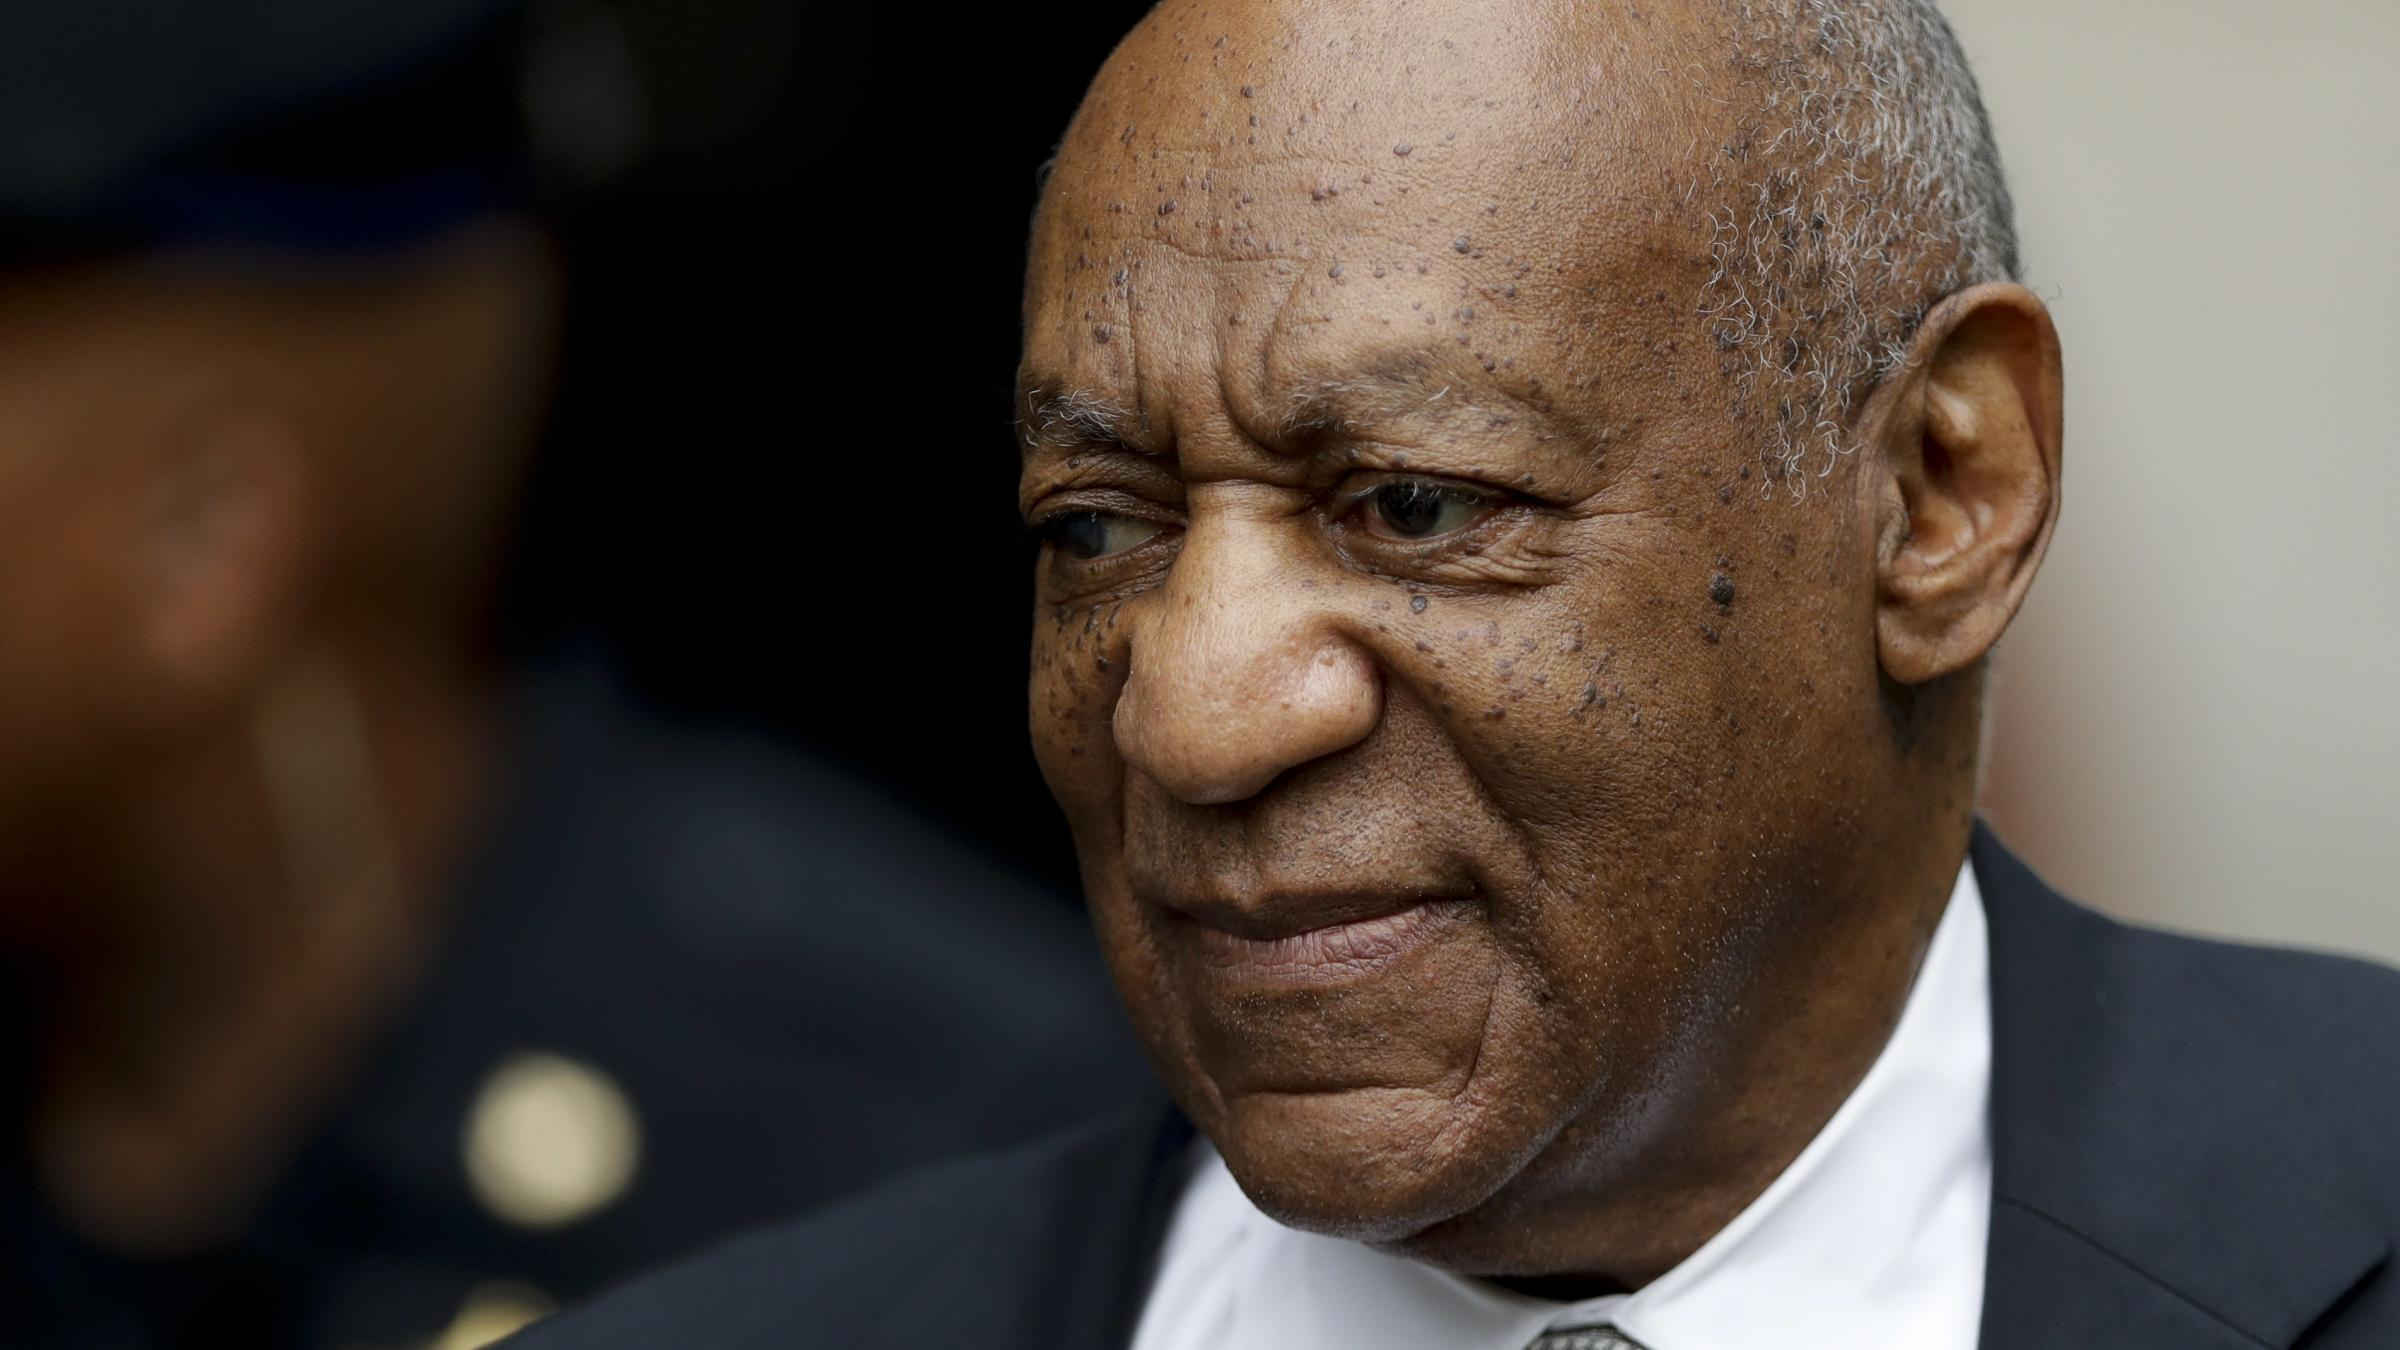 Lawyer Gloria Allred: 'It's Too Early to Celebrate, Mr. Cosby'